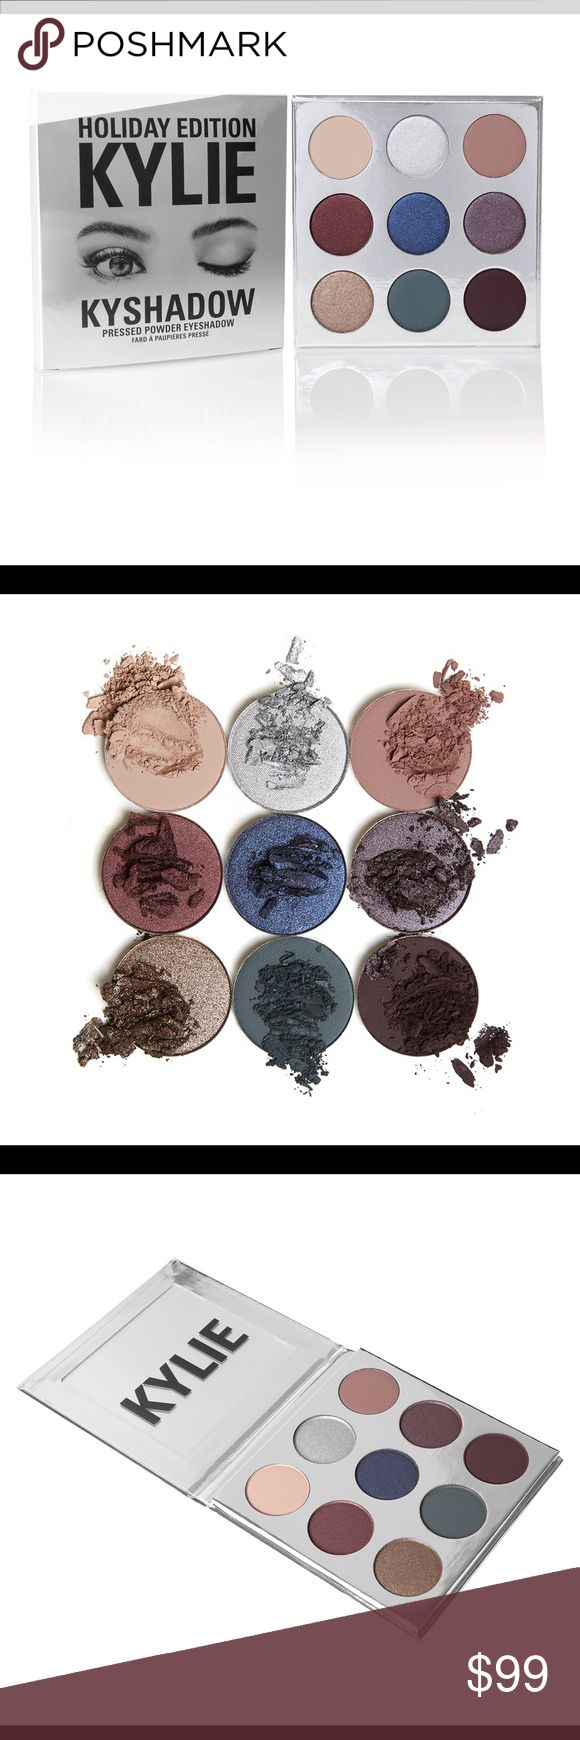 /Nip/KYSHADOW HOLIDAY PALETTE! Limited Edition! NIP/2016 Kyshadow Holiday Palette/LMT EDITION/9shadows/Infused w diamond powder/pkged in lmt edt silver 4 HOLIDAY SEASON:9 Shadows: 1)SugarCookie(satin wrm nude)2)Frosty(metal platinmslv)3)Chestnut(mat dustymauve)4)Mittens(metal mahoganyred)5)Winter(metal denimblue)/6)Nutcracker(metalslv-plum)7)Gingerbread(metalslv-bronze) /8)Evergreen(matdpteal-grn) 9)SilentNight(matblkplum) Talc+paraben FREE/buildable+velvety texture. NO REFUND/RETURNS ON NIP…